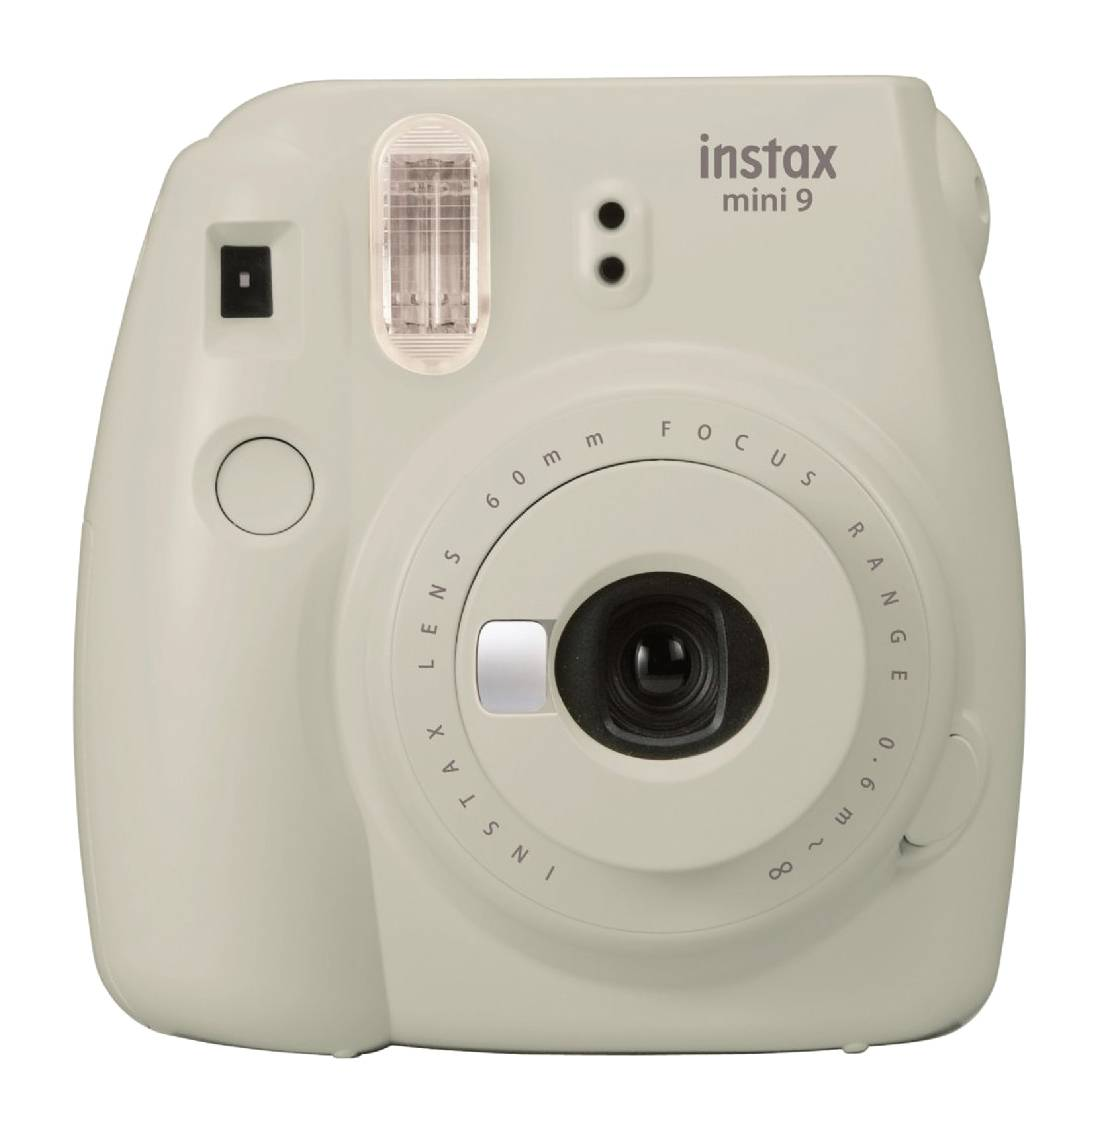 Focus Fujifilm Instax Mini 9 - Smoky White